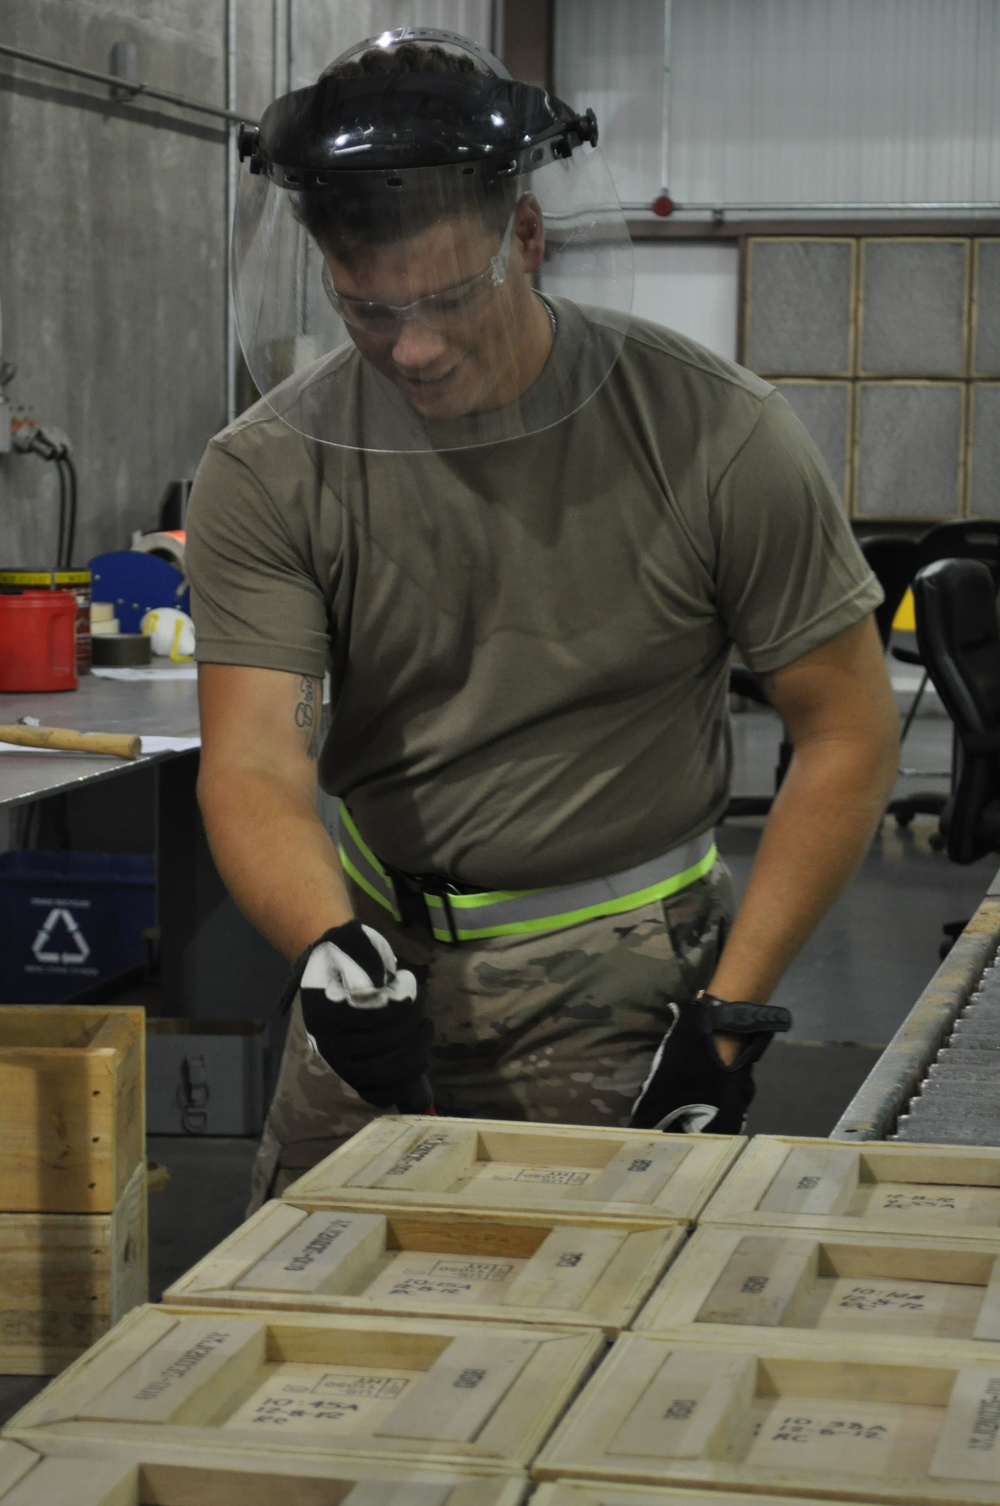 Ordnance Soldiers gain real-world skills with Crane Army Depot Operations